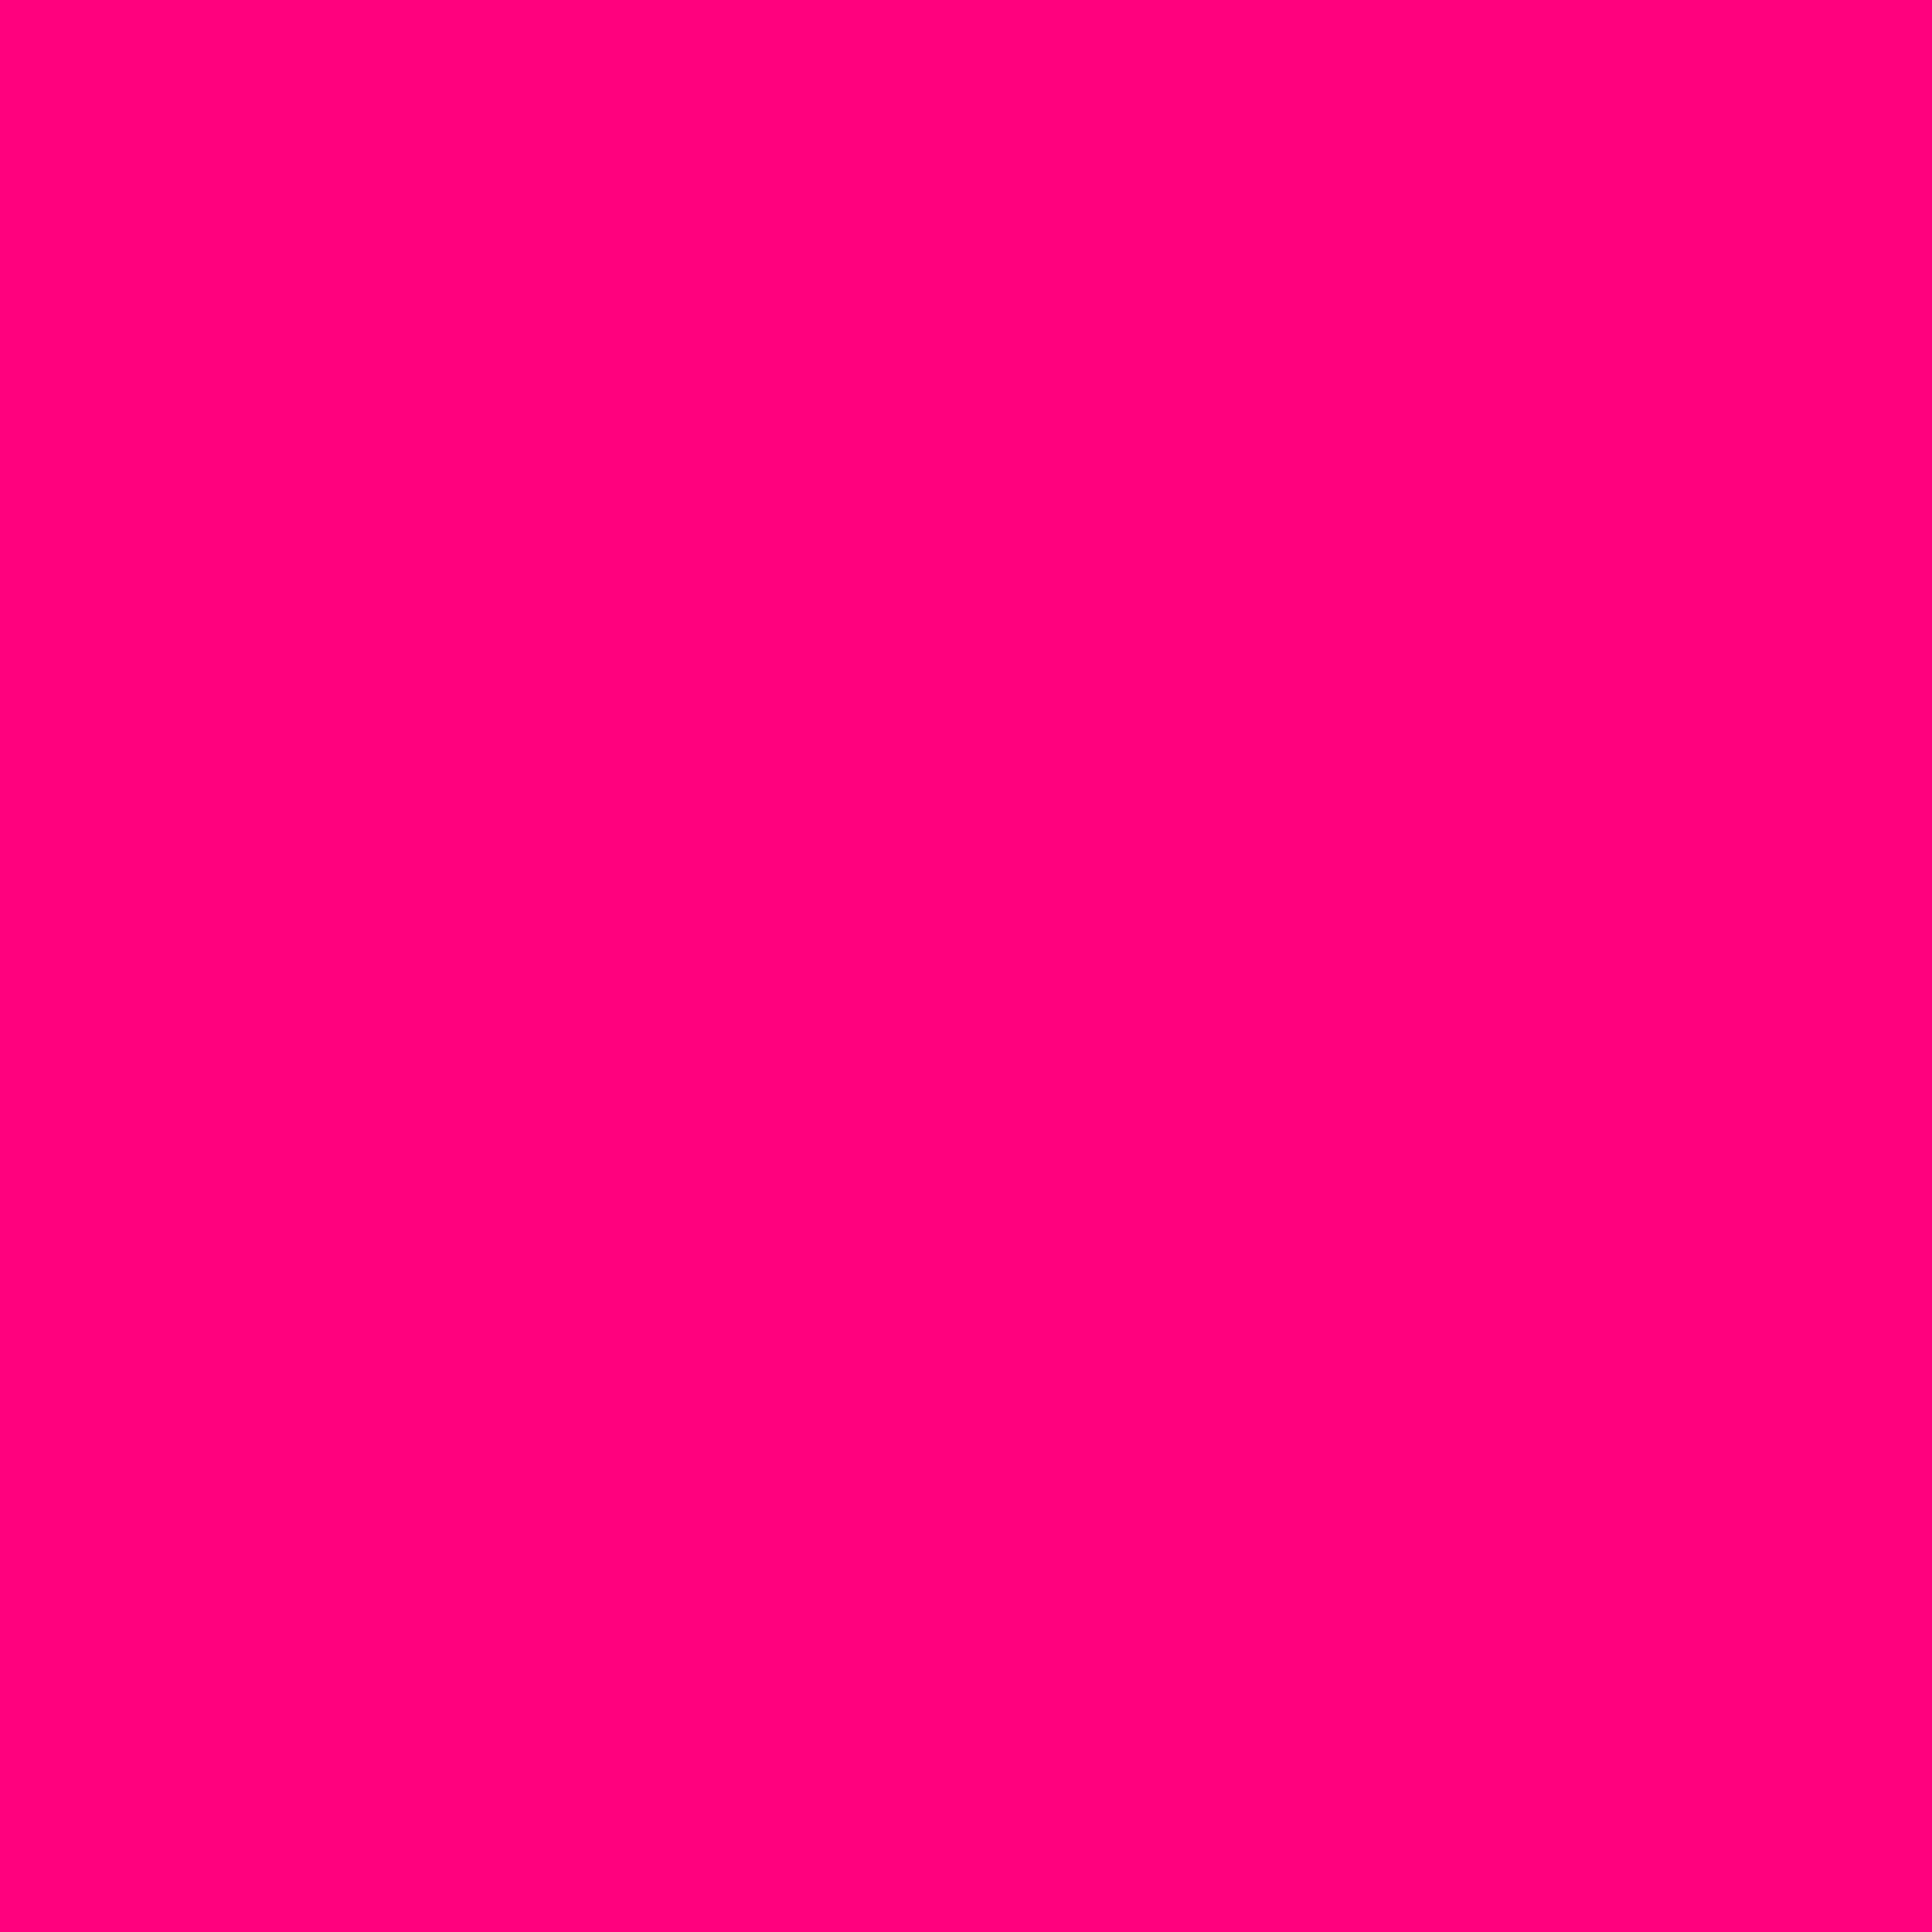 2732x2732 Bright Pink Solid Color Background